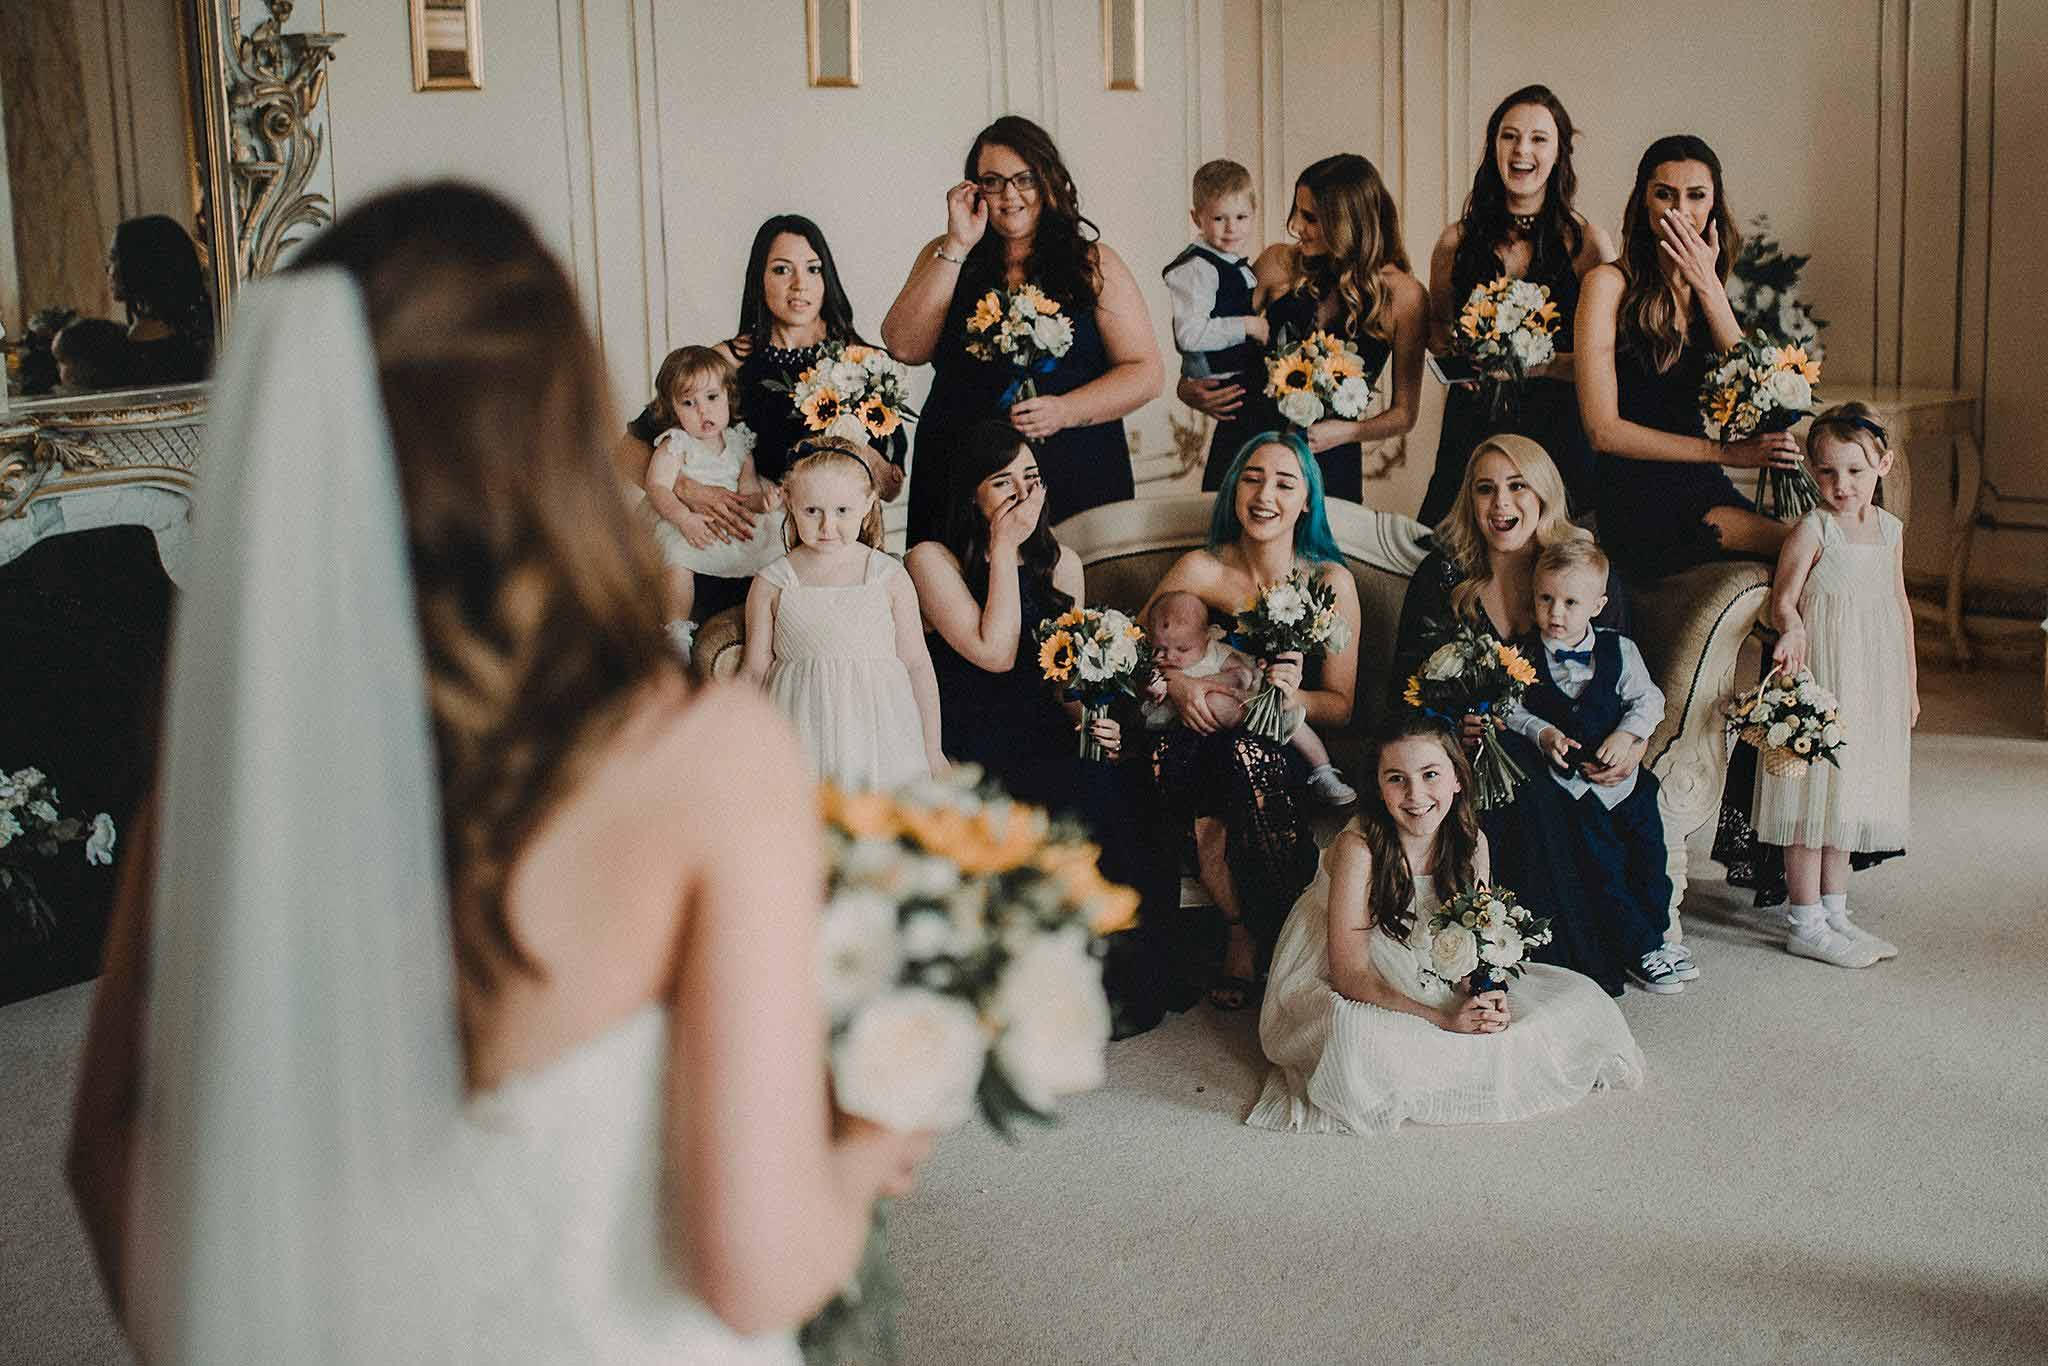 Bridesmaids reaction to the bride wedding photo - Gosfield Hall Wedding